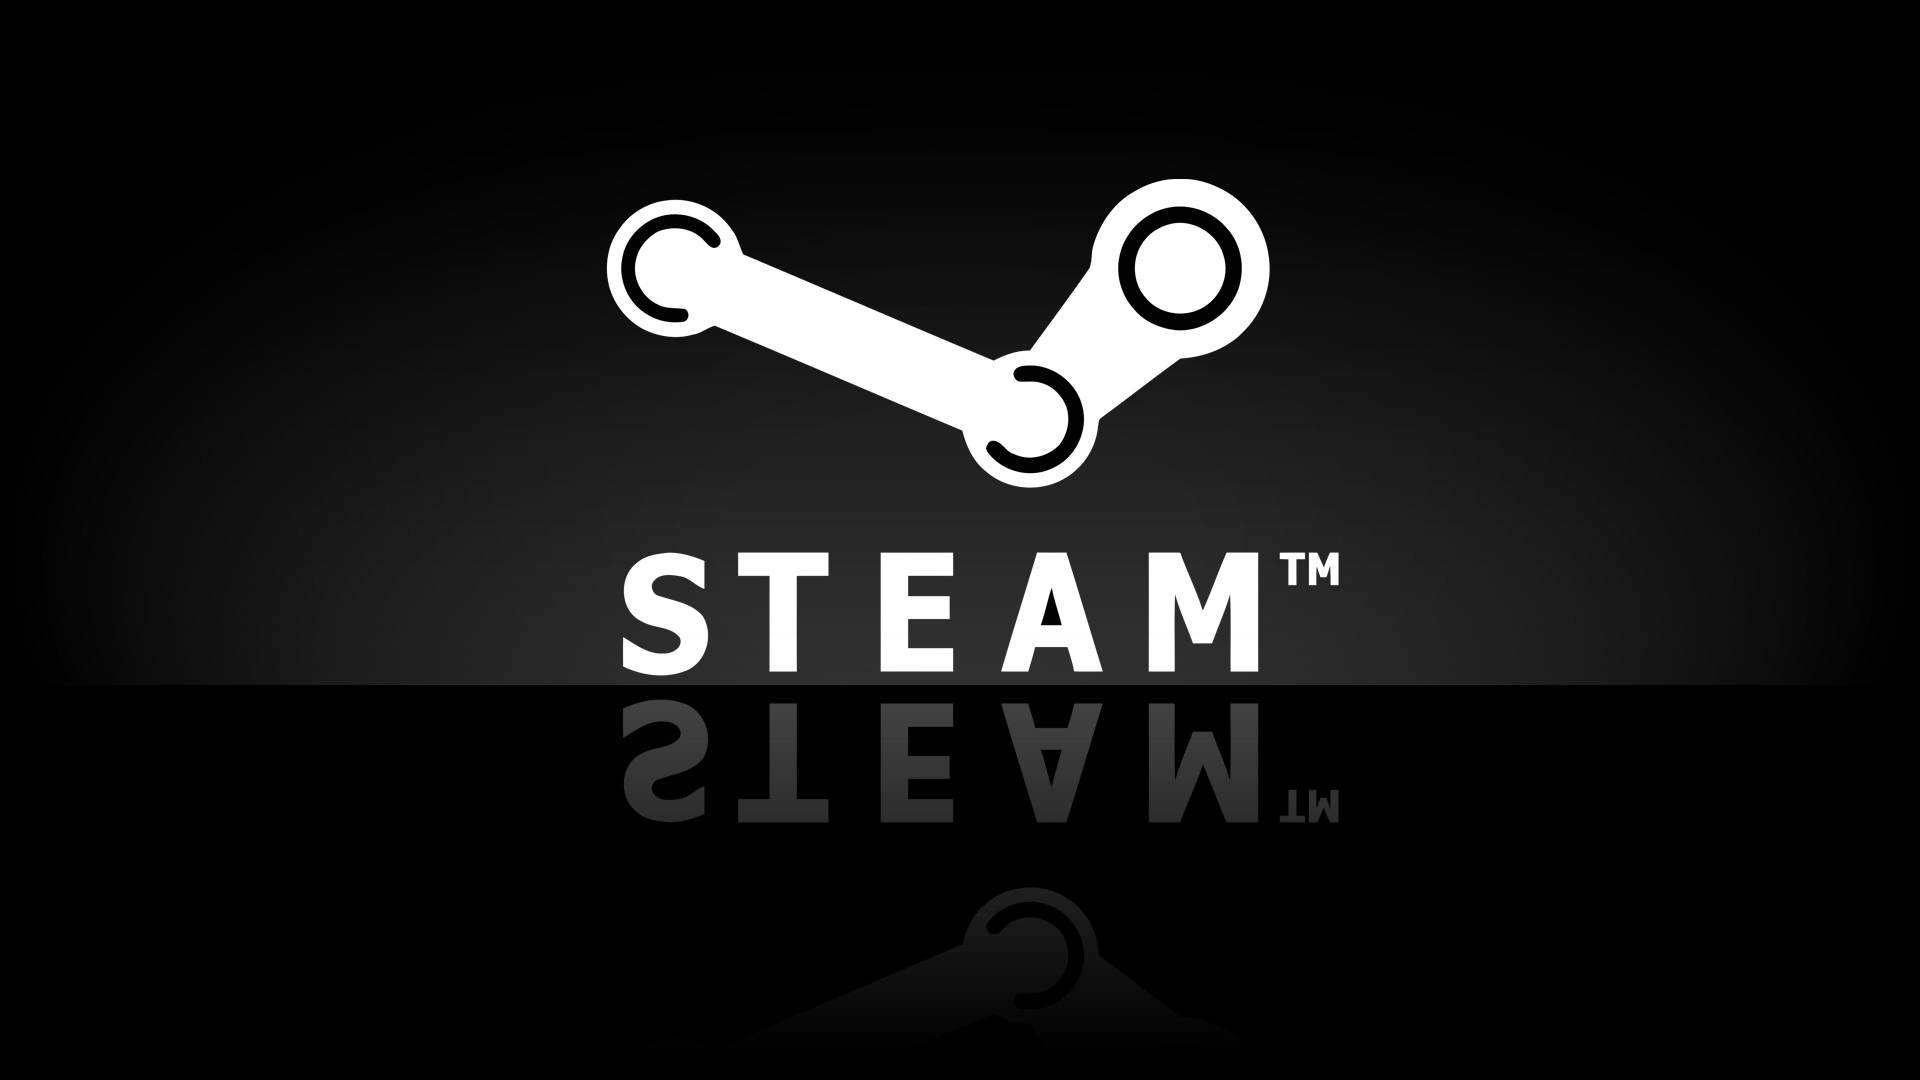 Steam Valve Found Guilty Of Breaching Australian Law With Refund Policy